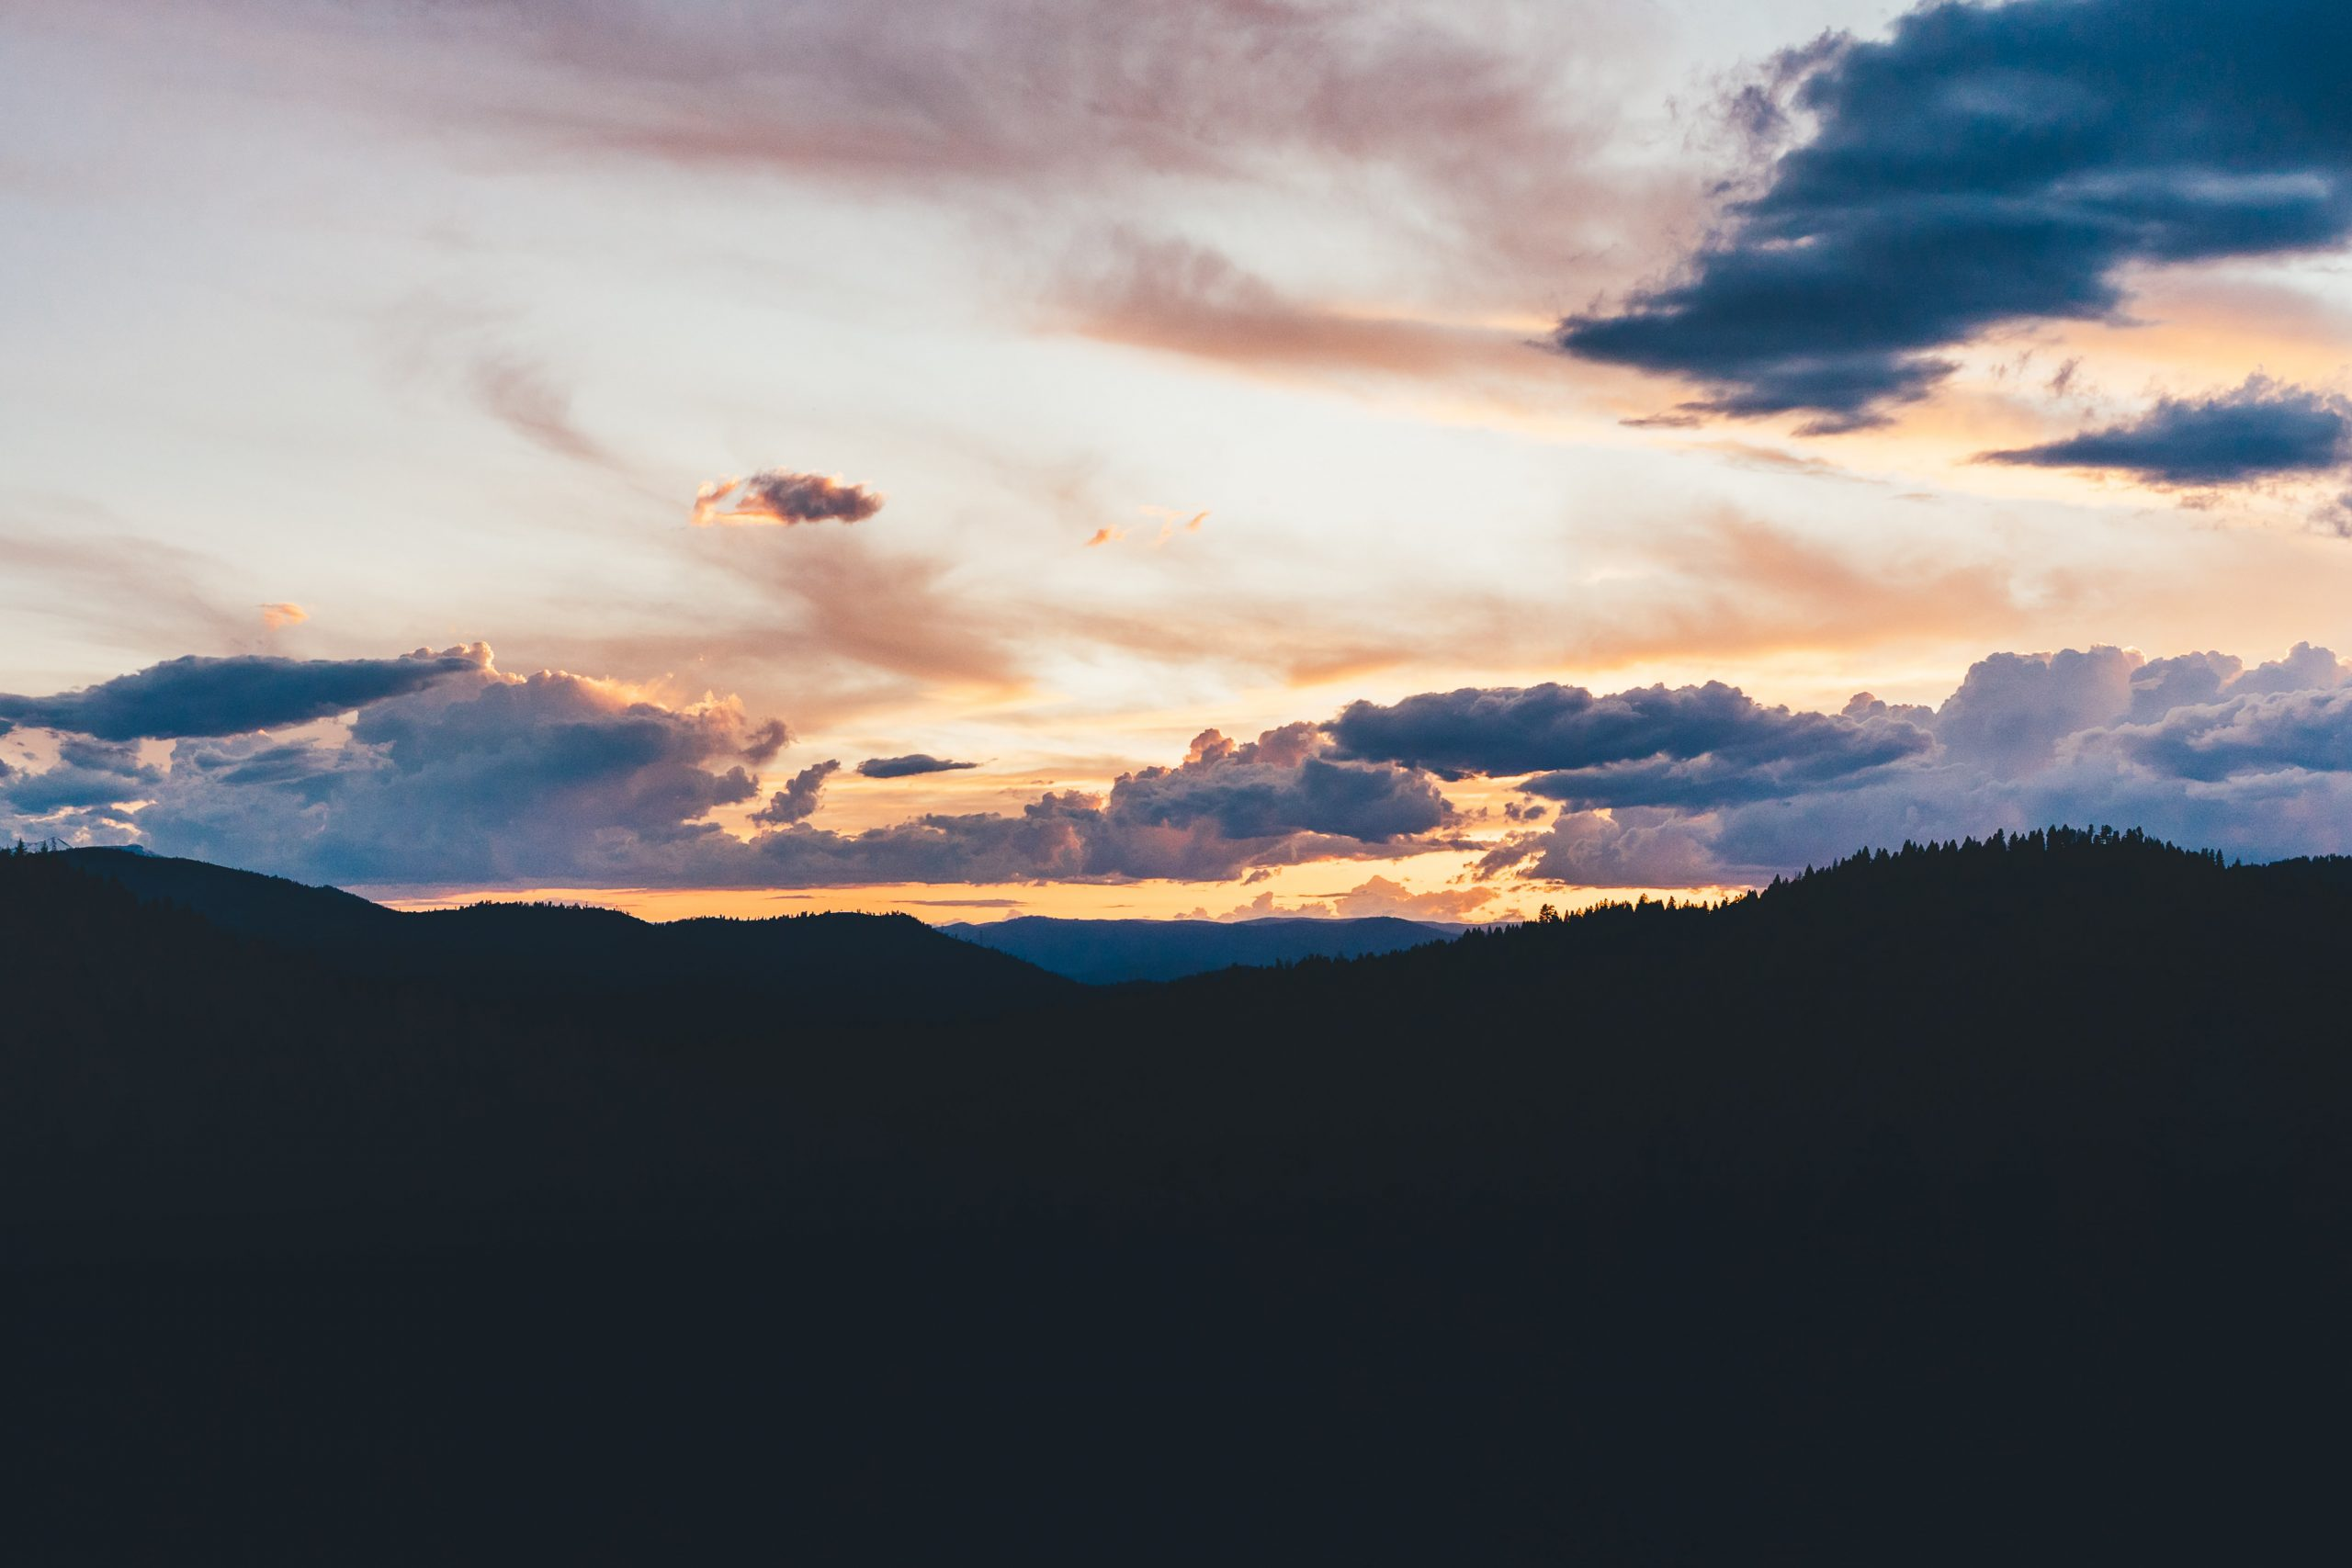 Sunset over mountains.